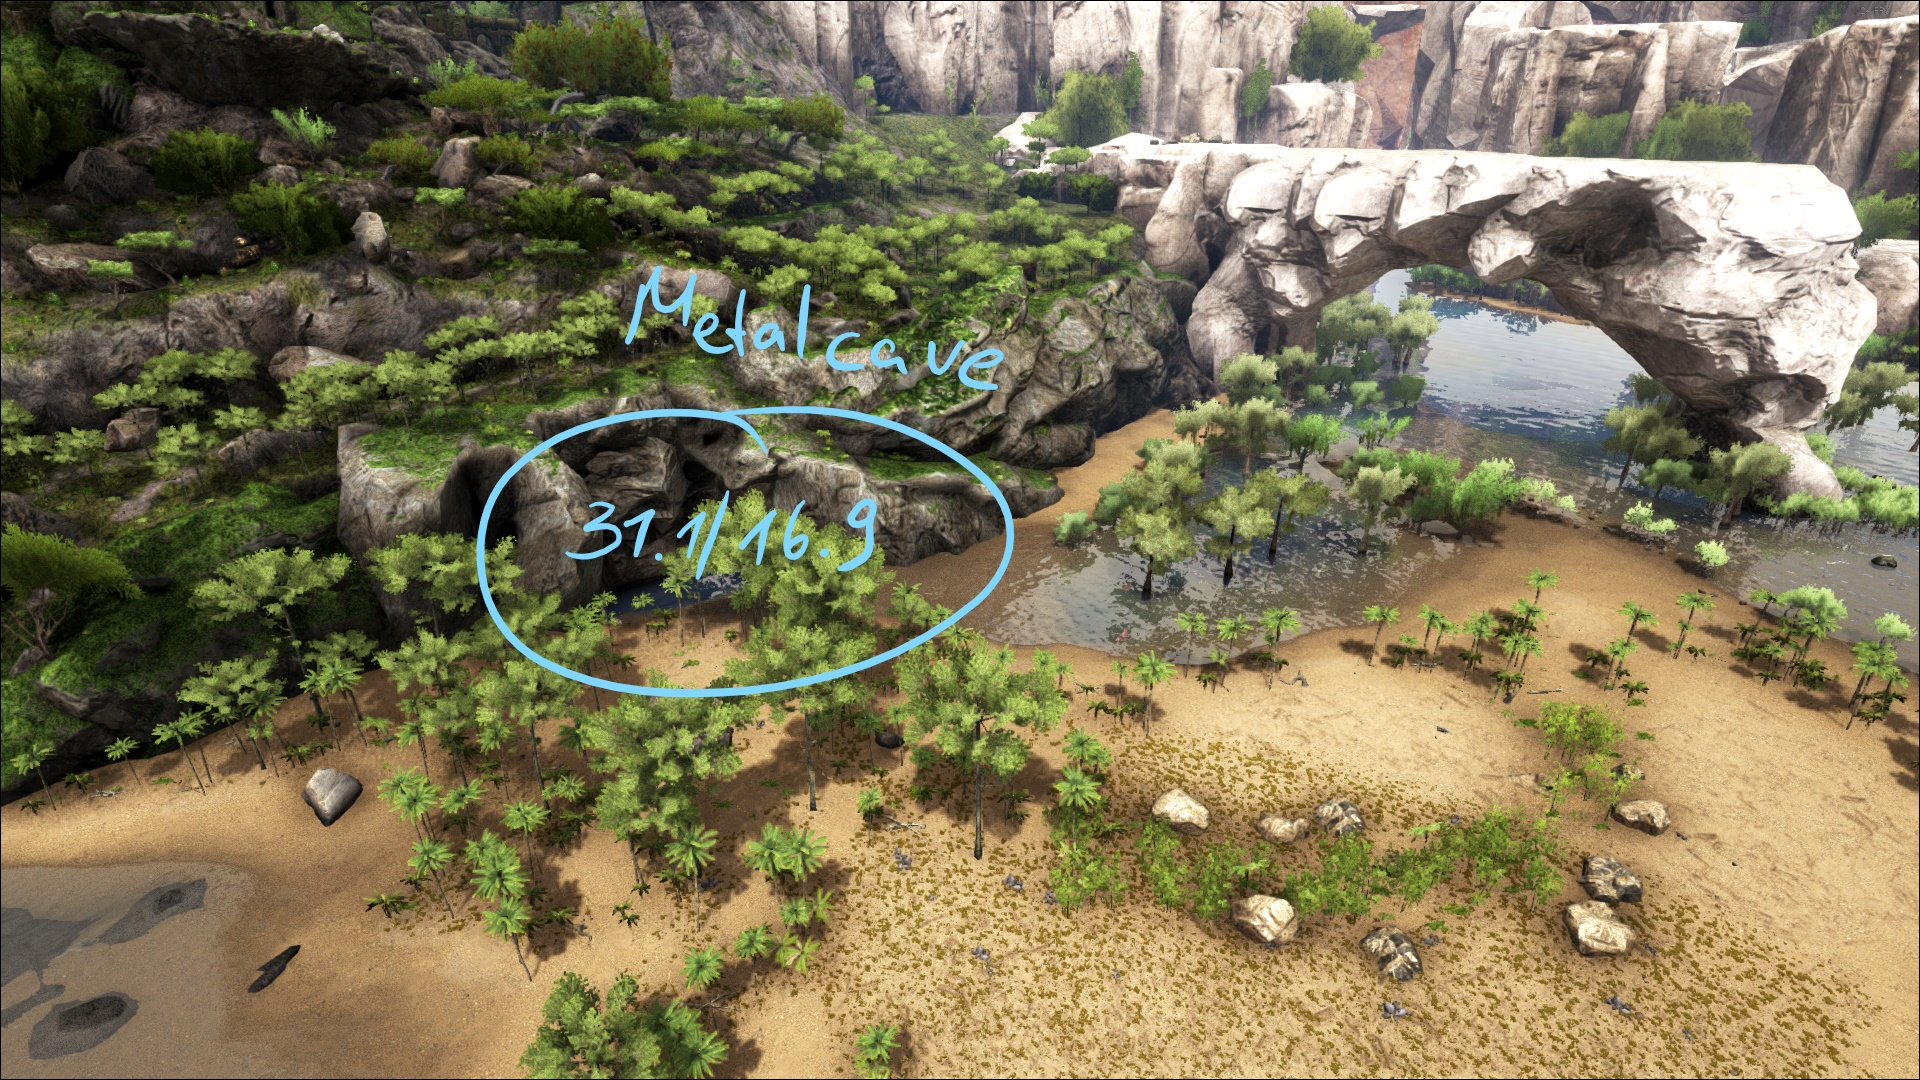 Metal cave ragnarok arksurvival evolved map wiki fandom you can find the cave by following the black rock inland that is placed on the peninsula malvernweather Choice Image